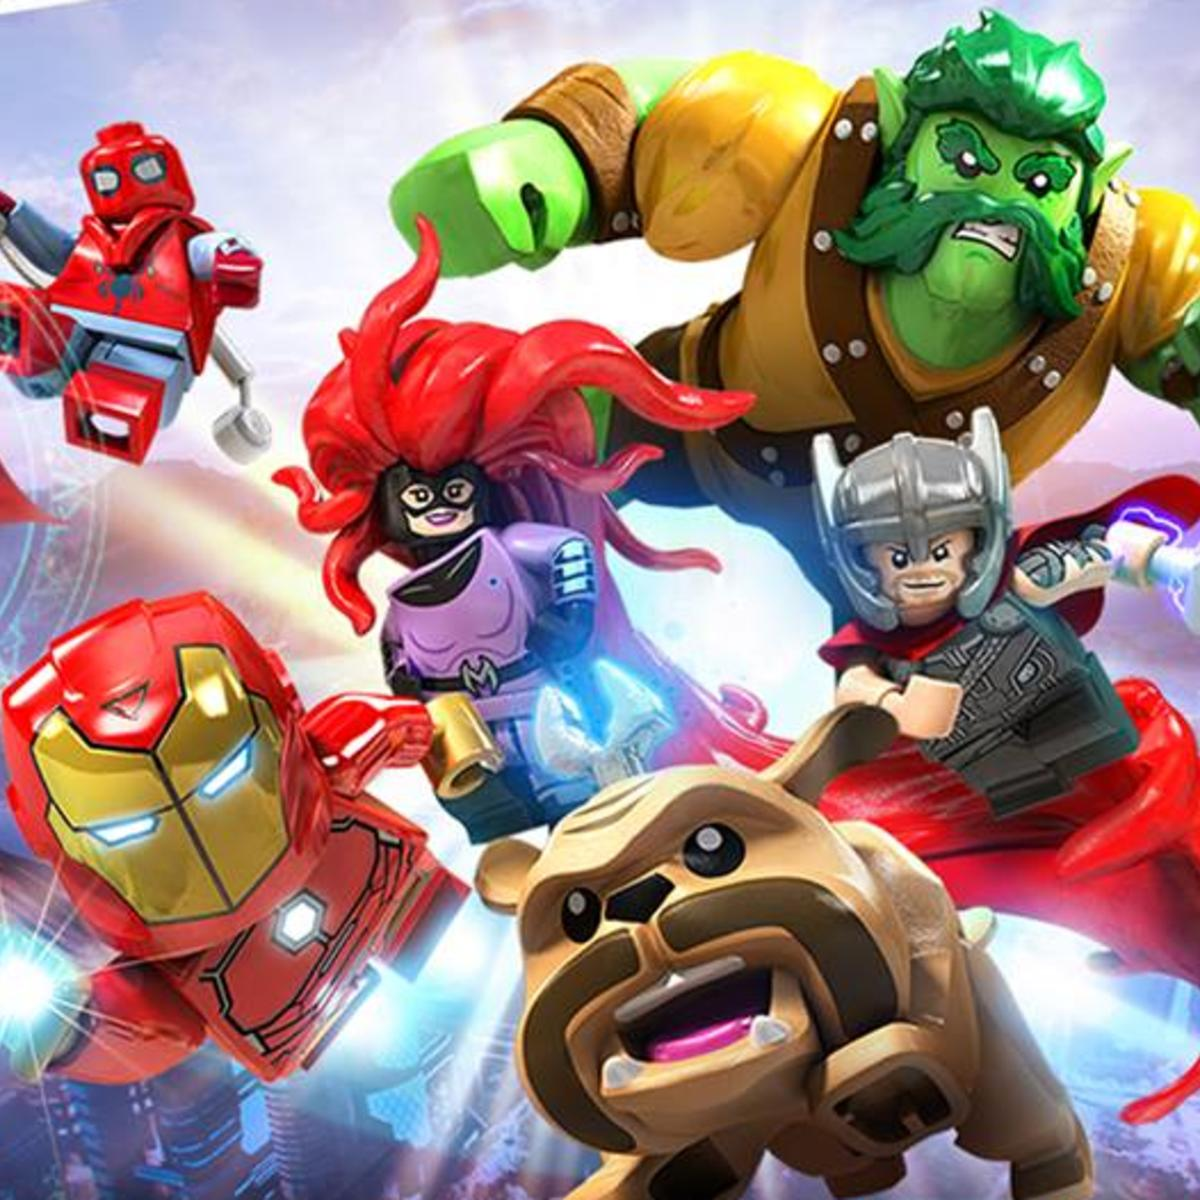 Syfy travel through space and time with lego marvel superheroes 2 travel through space and time with lego marvel superheroes 2 story trailer voltagebd Gallery